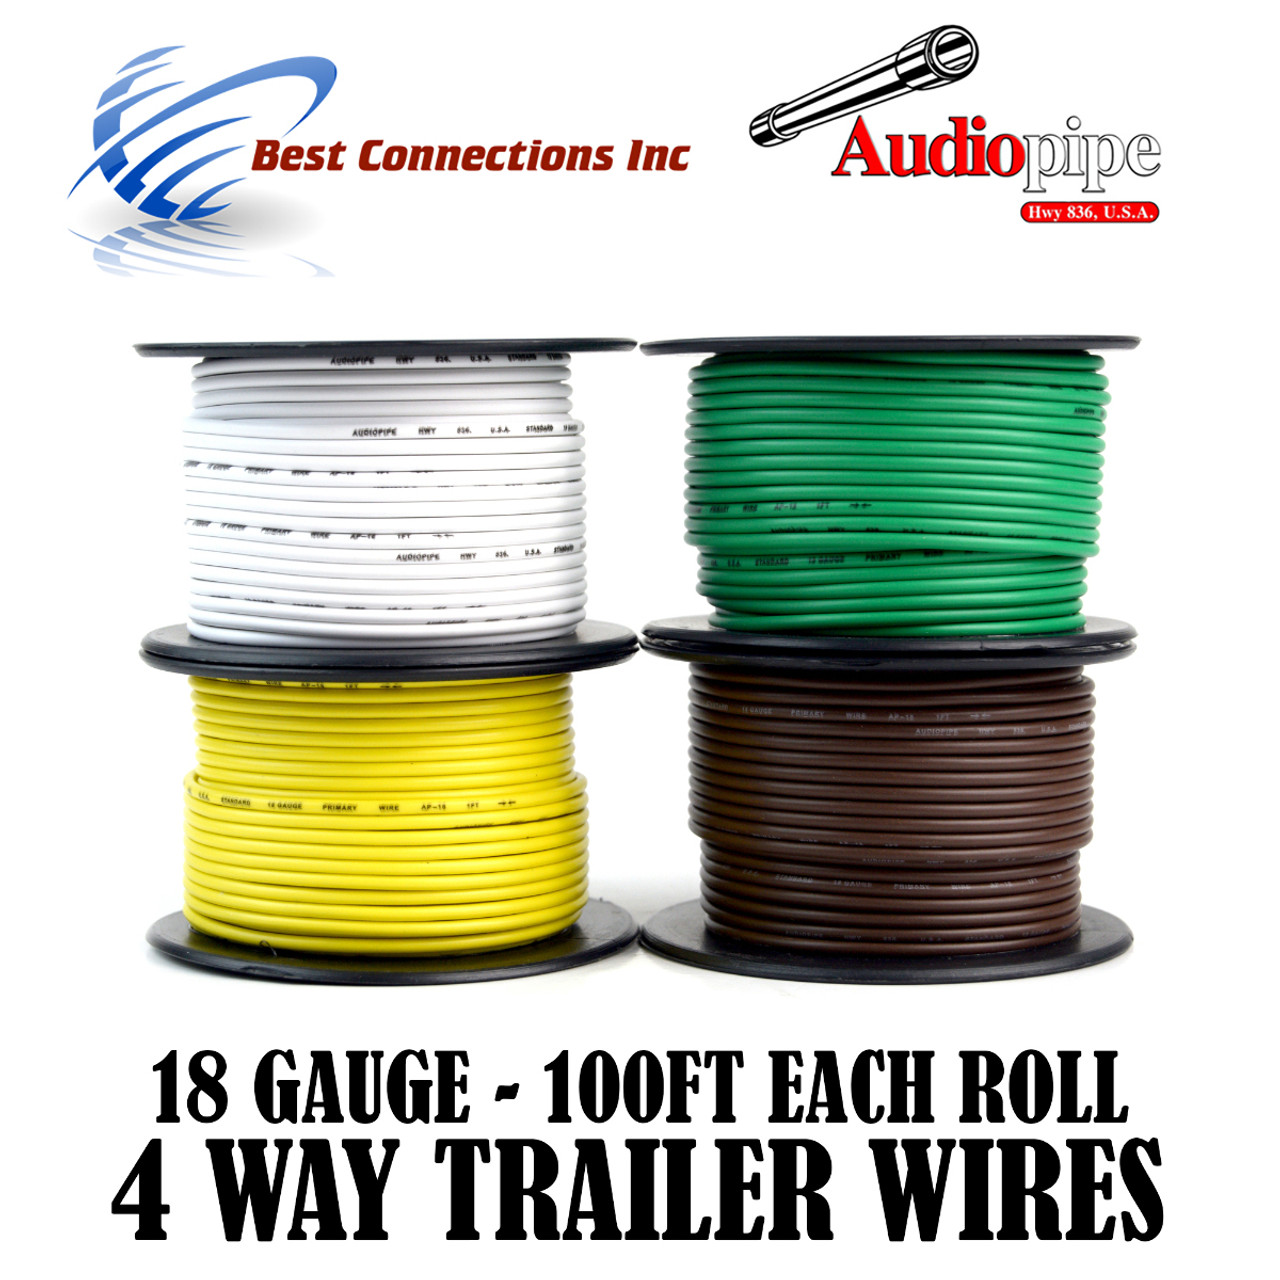 trailer wire light cable for harness 4 way cord 18 gauge 100ft rh ocalapowersports com 2001 Chevrolet 2500 Dash Wiring Harness Classic Car Wiring Harness